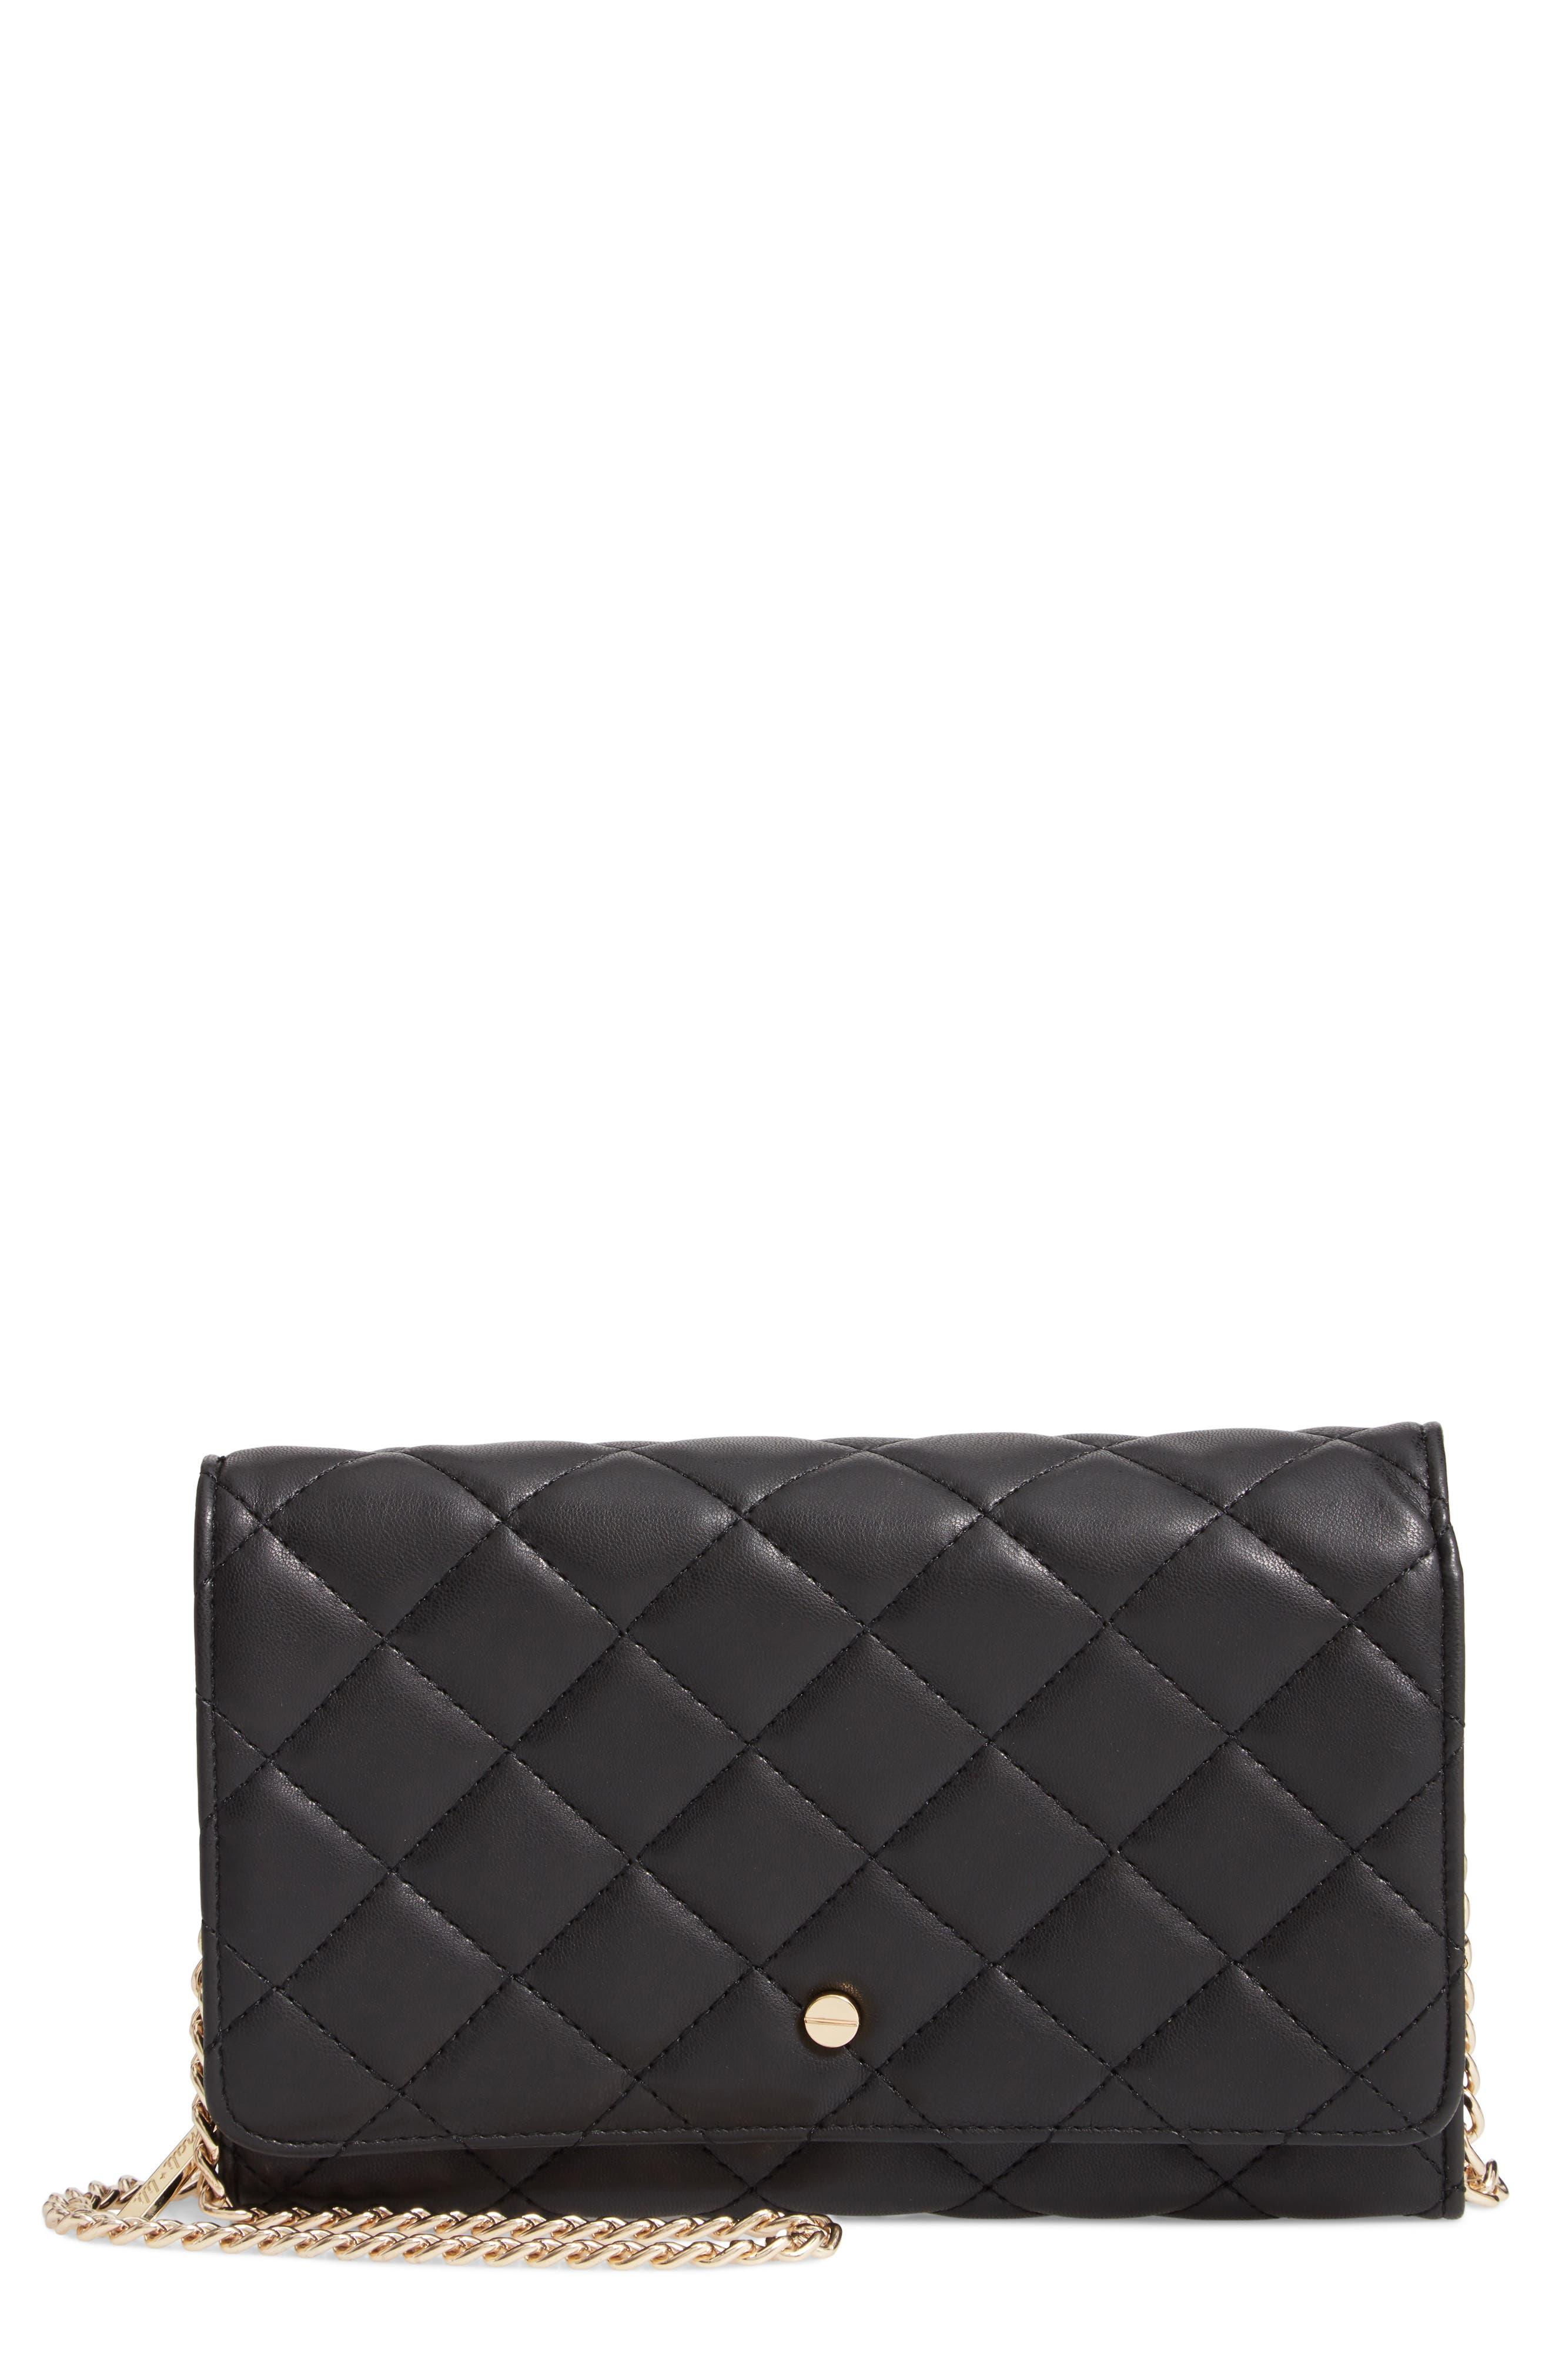 Mali + Lili Ciara Quilted Vegan Leather Convertible Clutch,                         Main,                         color, BLACK